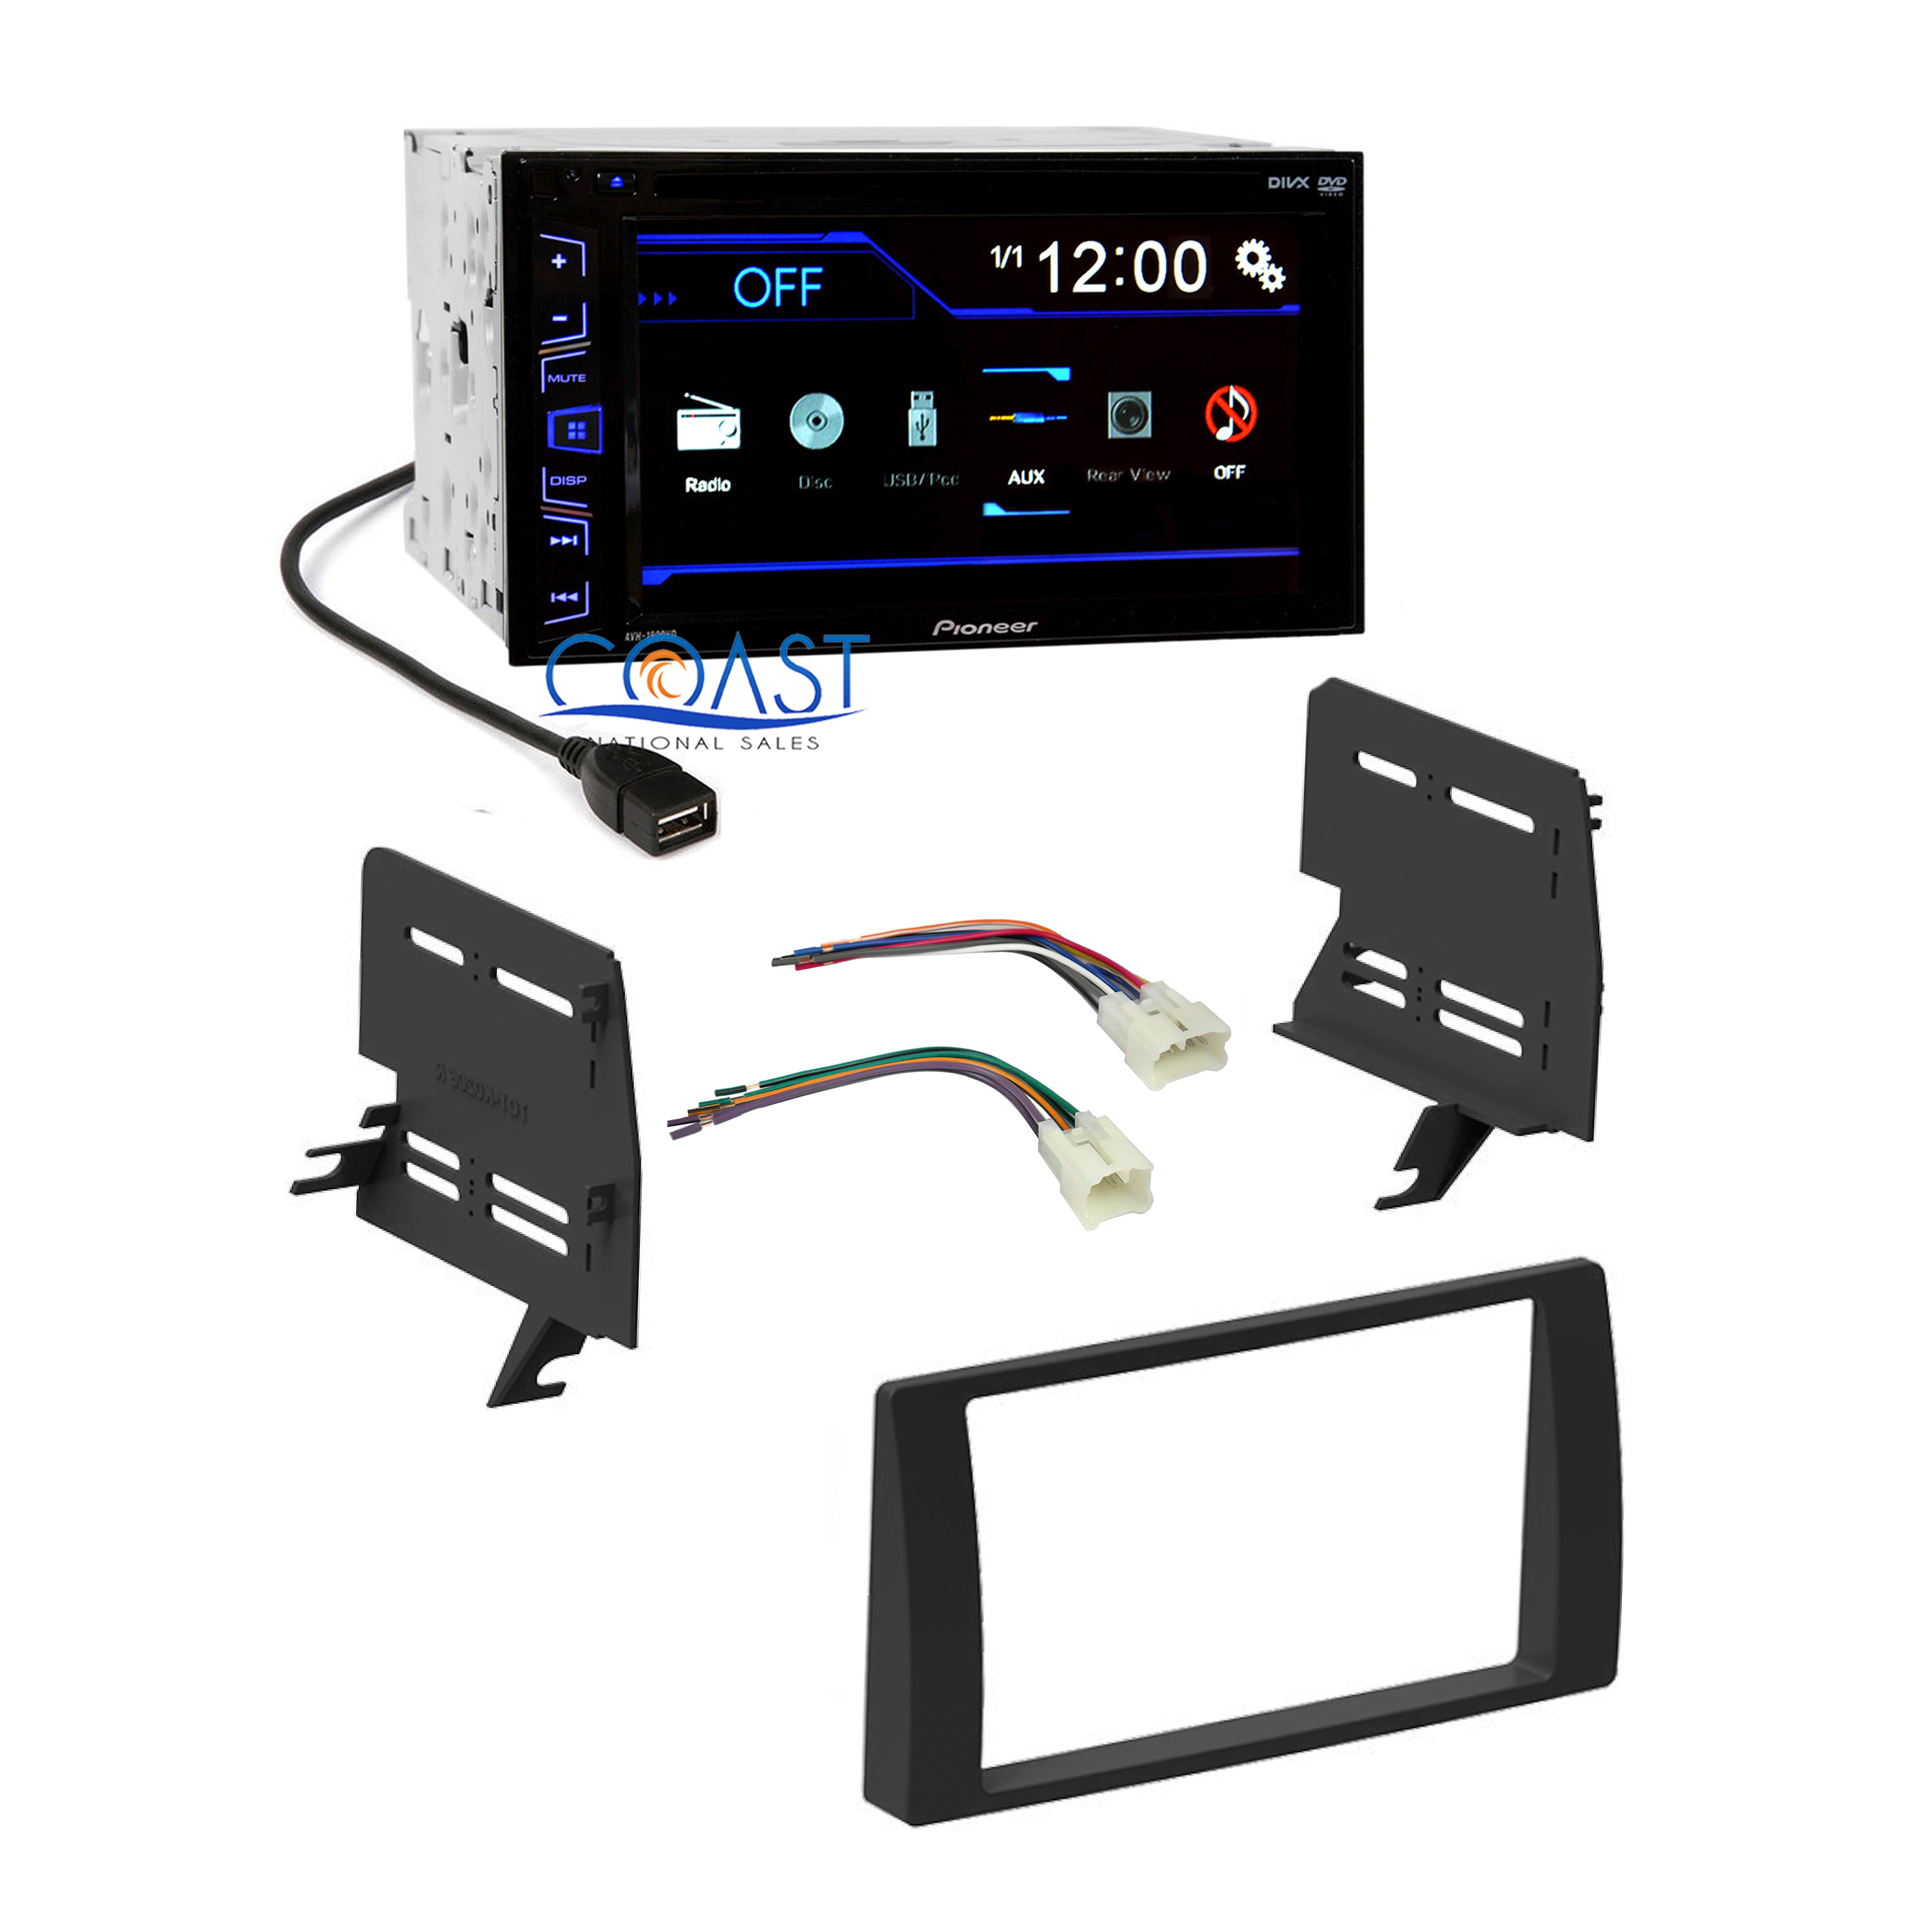 hight resolution of 2005 toyota camry car stereo wiring diagram